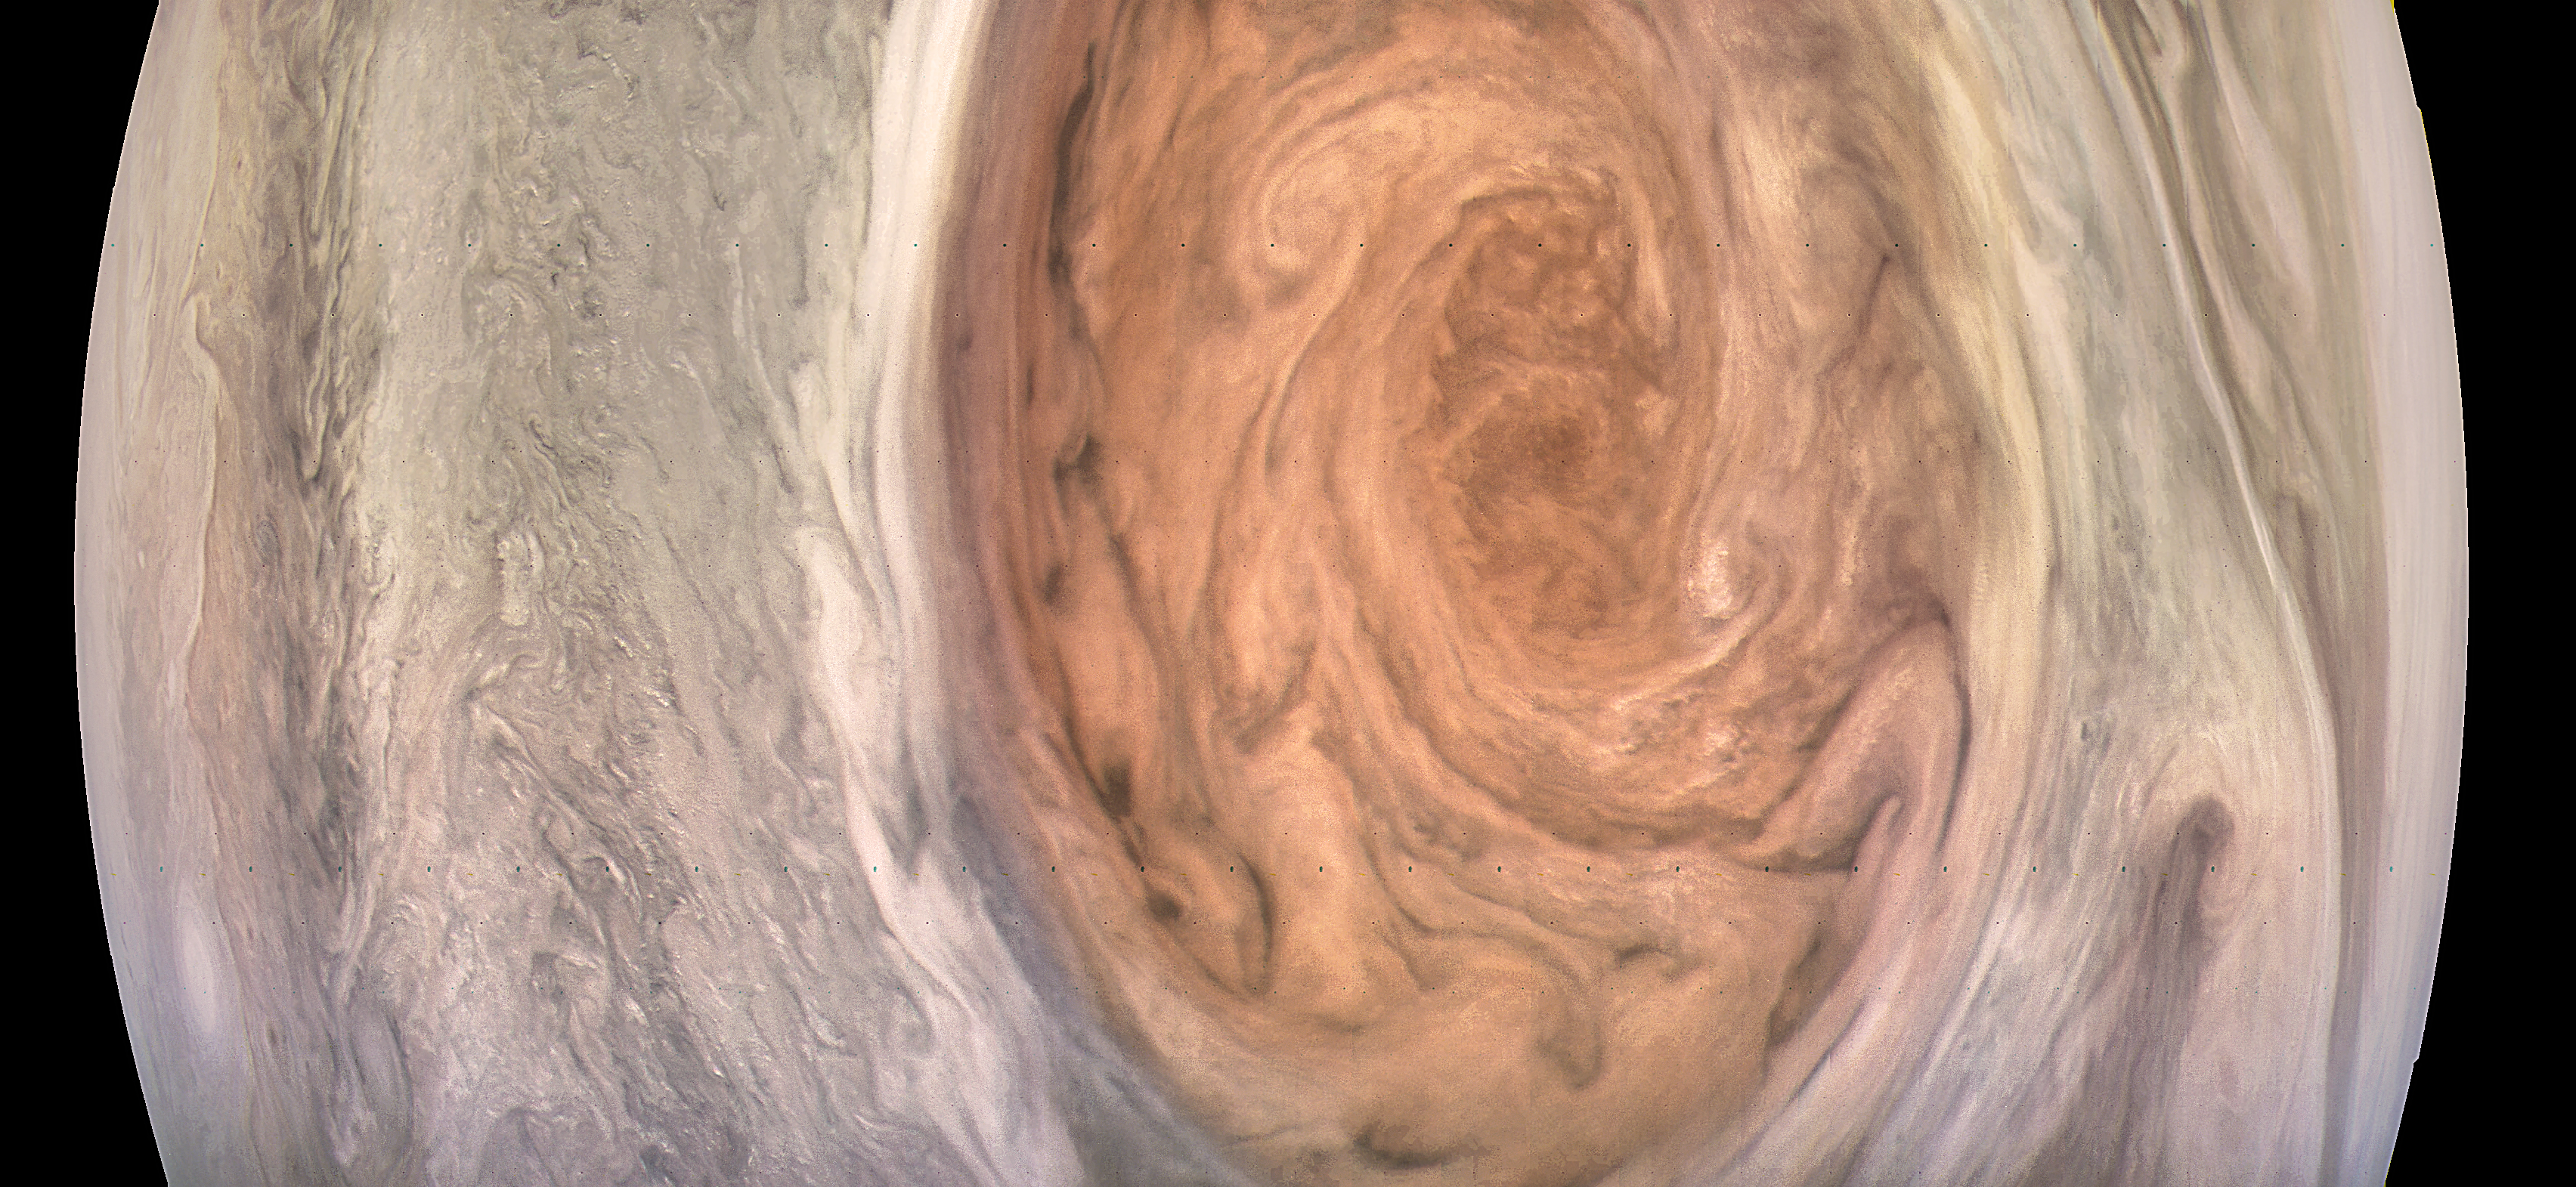 jupiter u0027s great red spot likely a massive heat source nasa